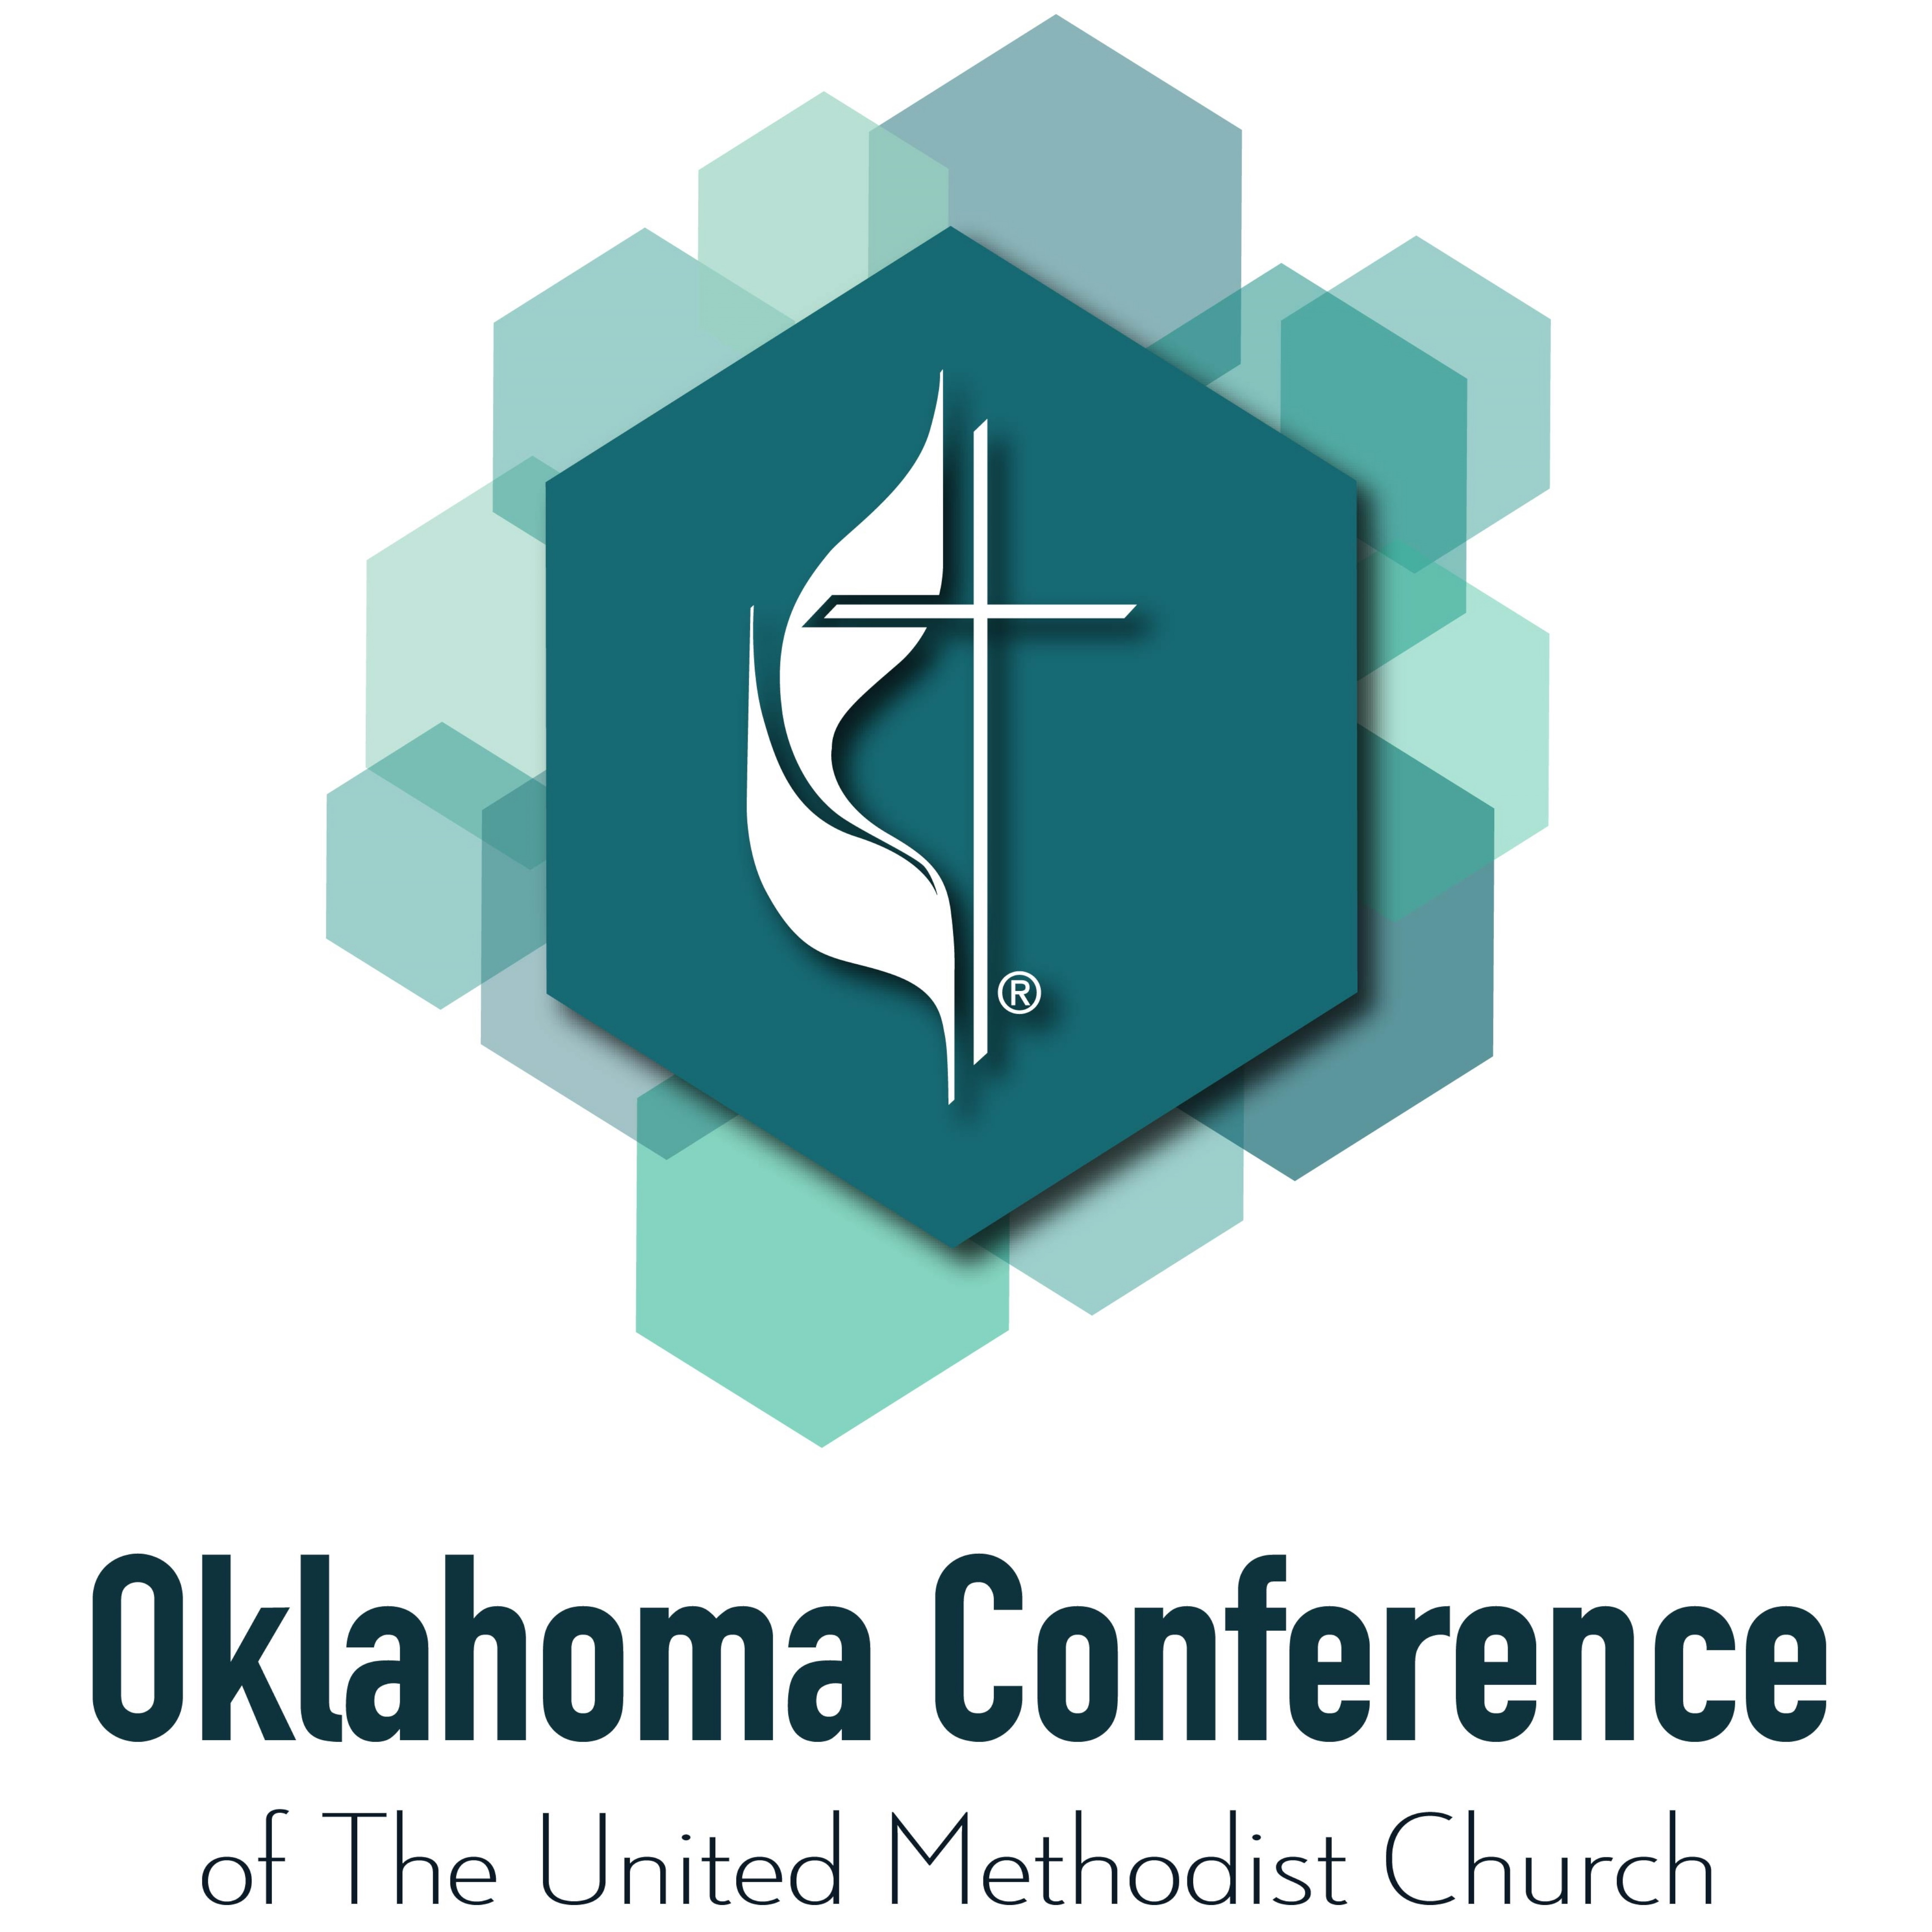 Oklahoma Conference of the United Methodist Church